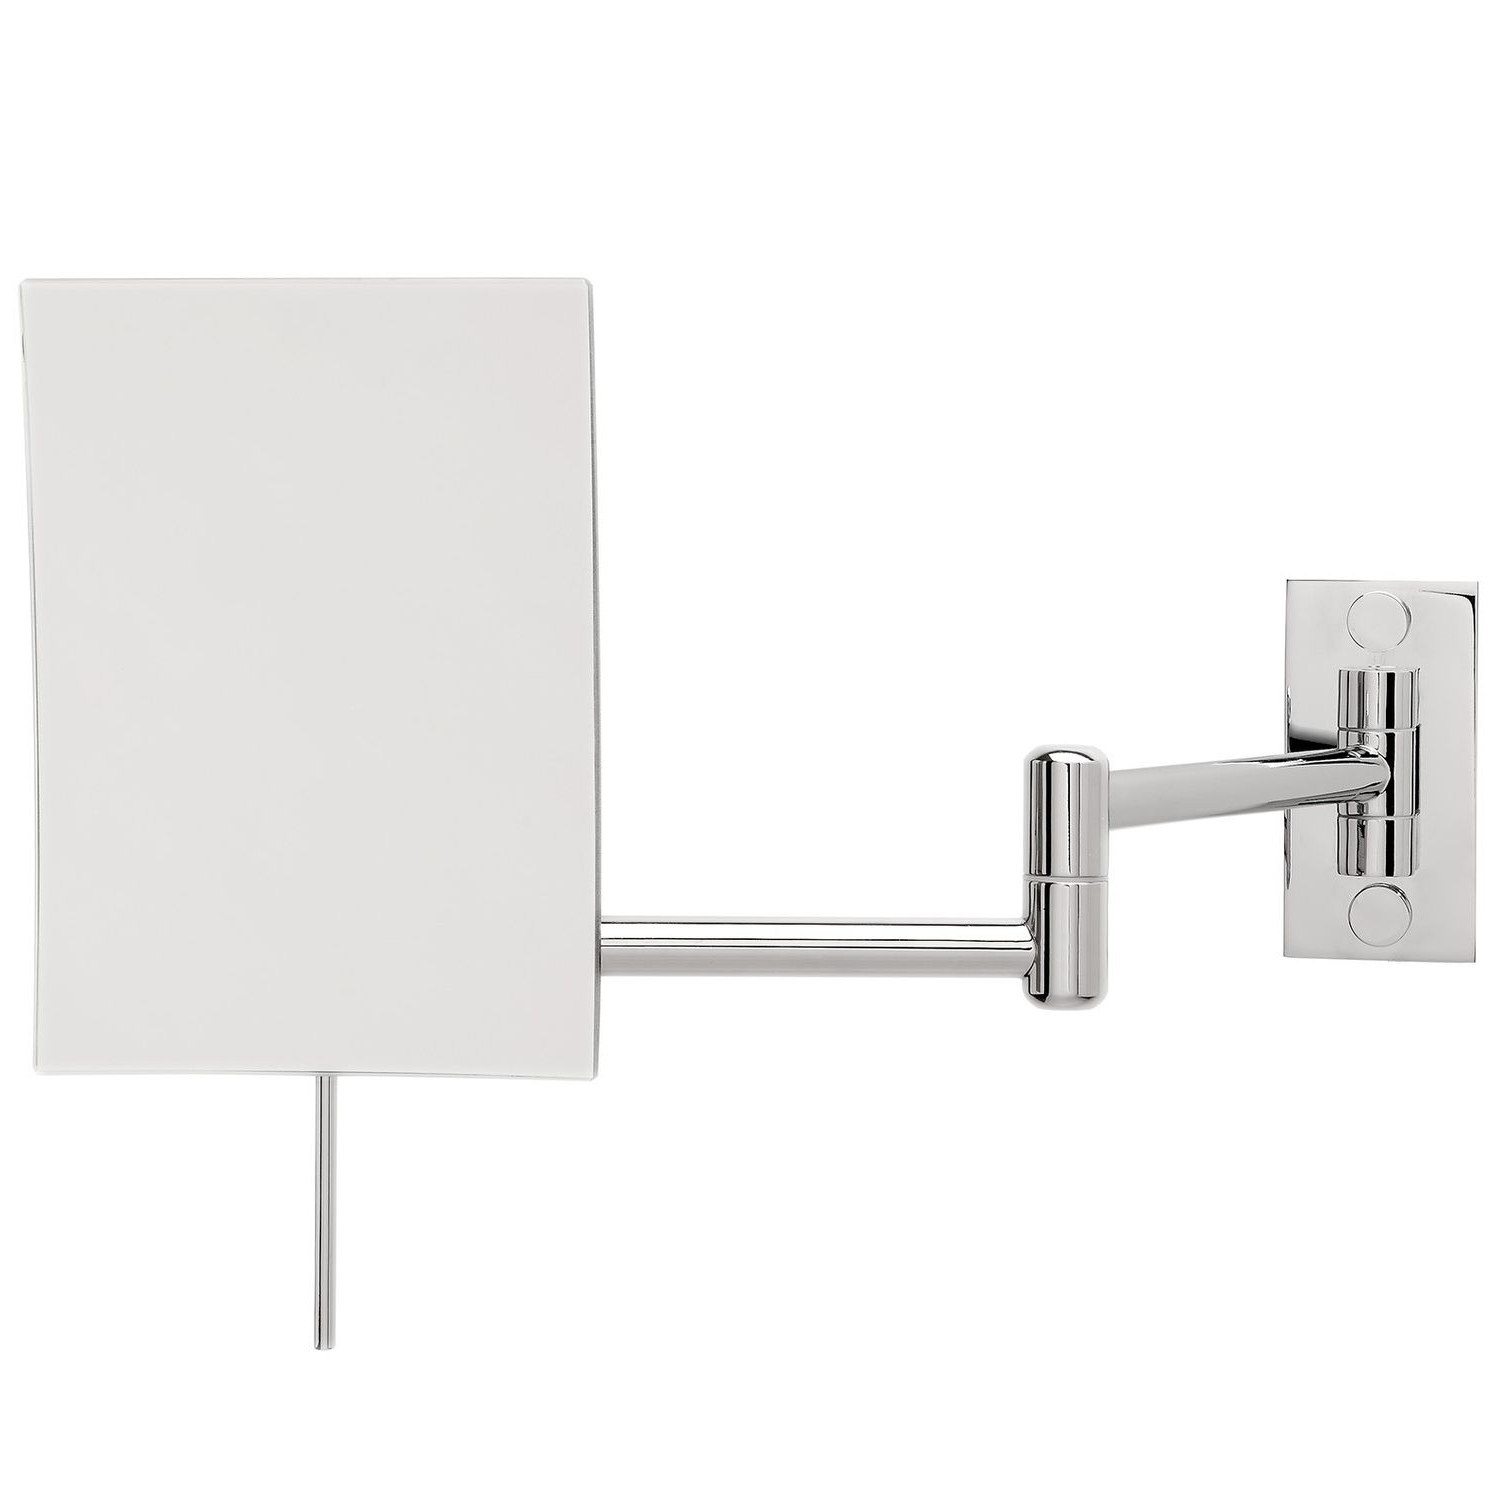 2019 Wall Mounted Bathroom Mirror / Magnifying / Contemporary With Regard To Magnifying Wall Mirrors For Bathroom (View 1 of 20)